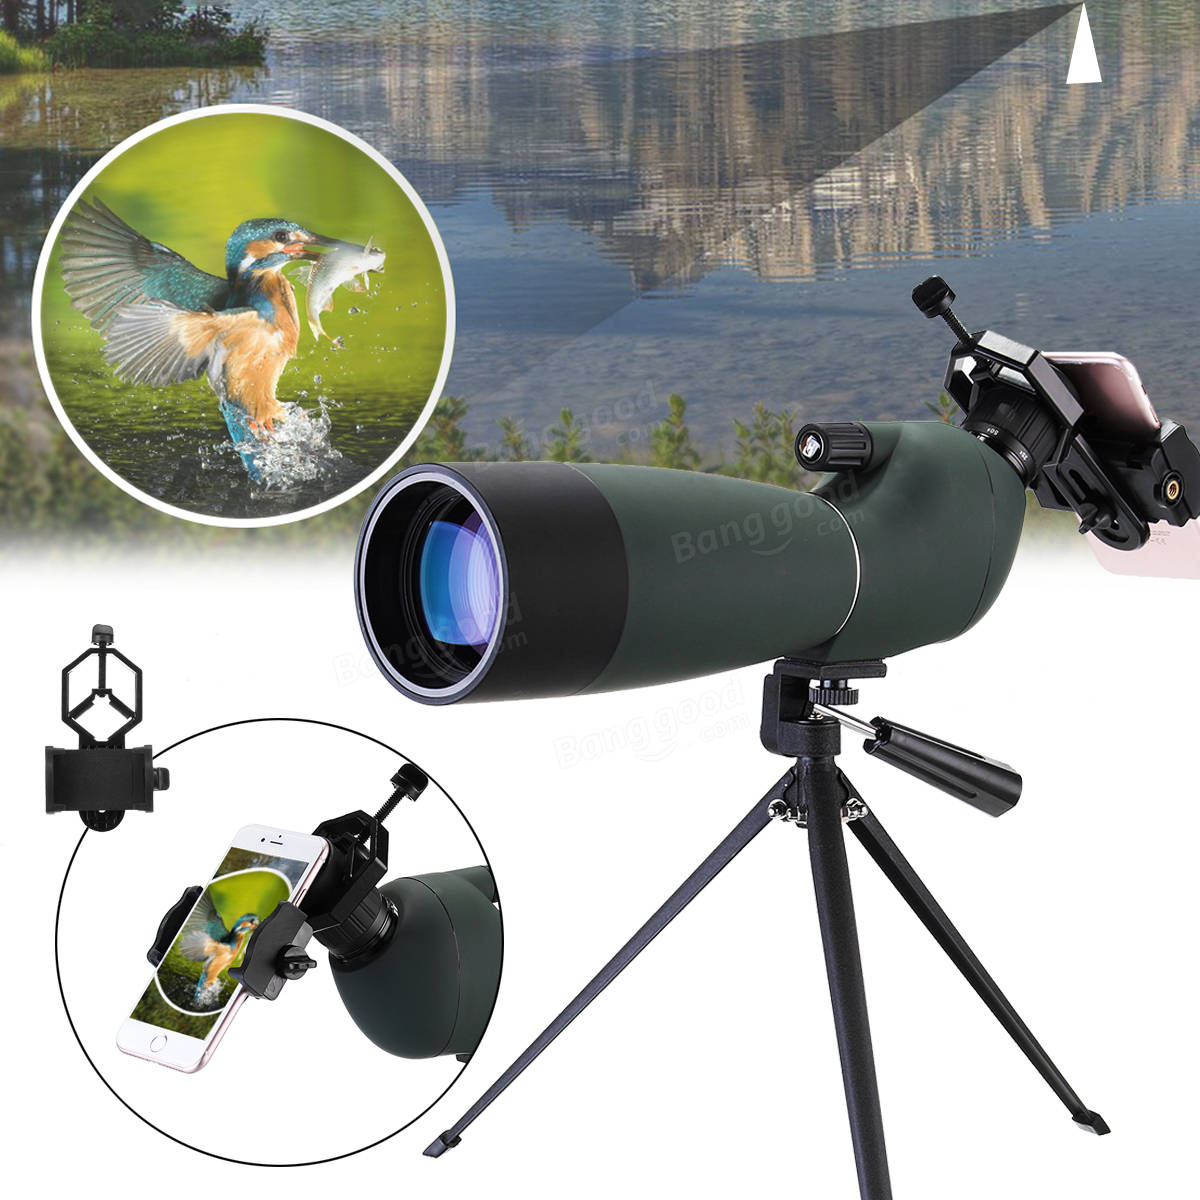 Xmund XD-TE1 25-75x70 Zoom Monocular HD BAK4 Optic Bird Watching Spotting Telescope +Tripod+Phone Holder